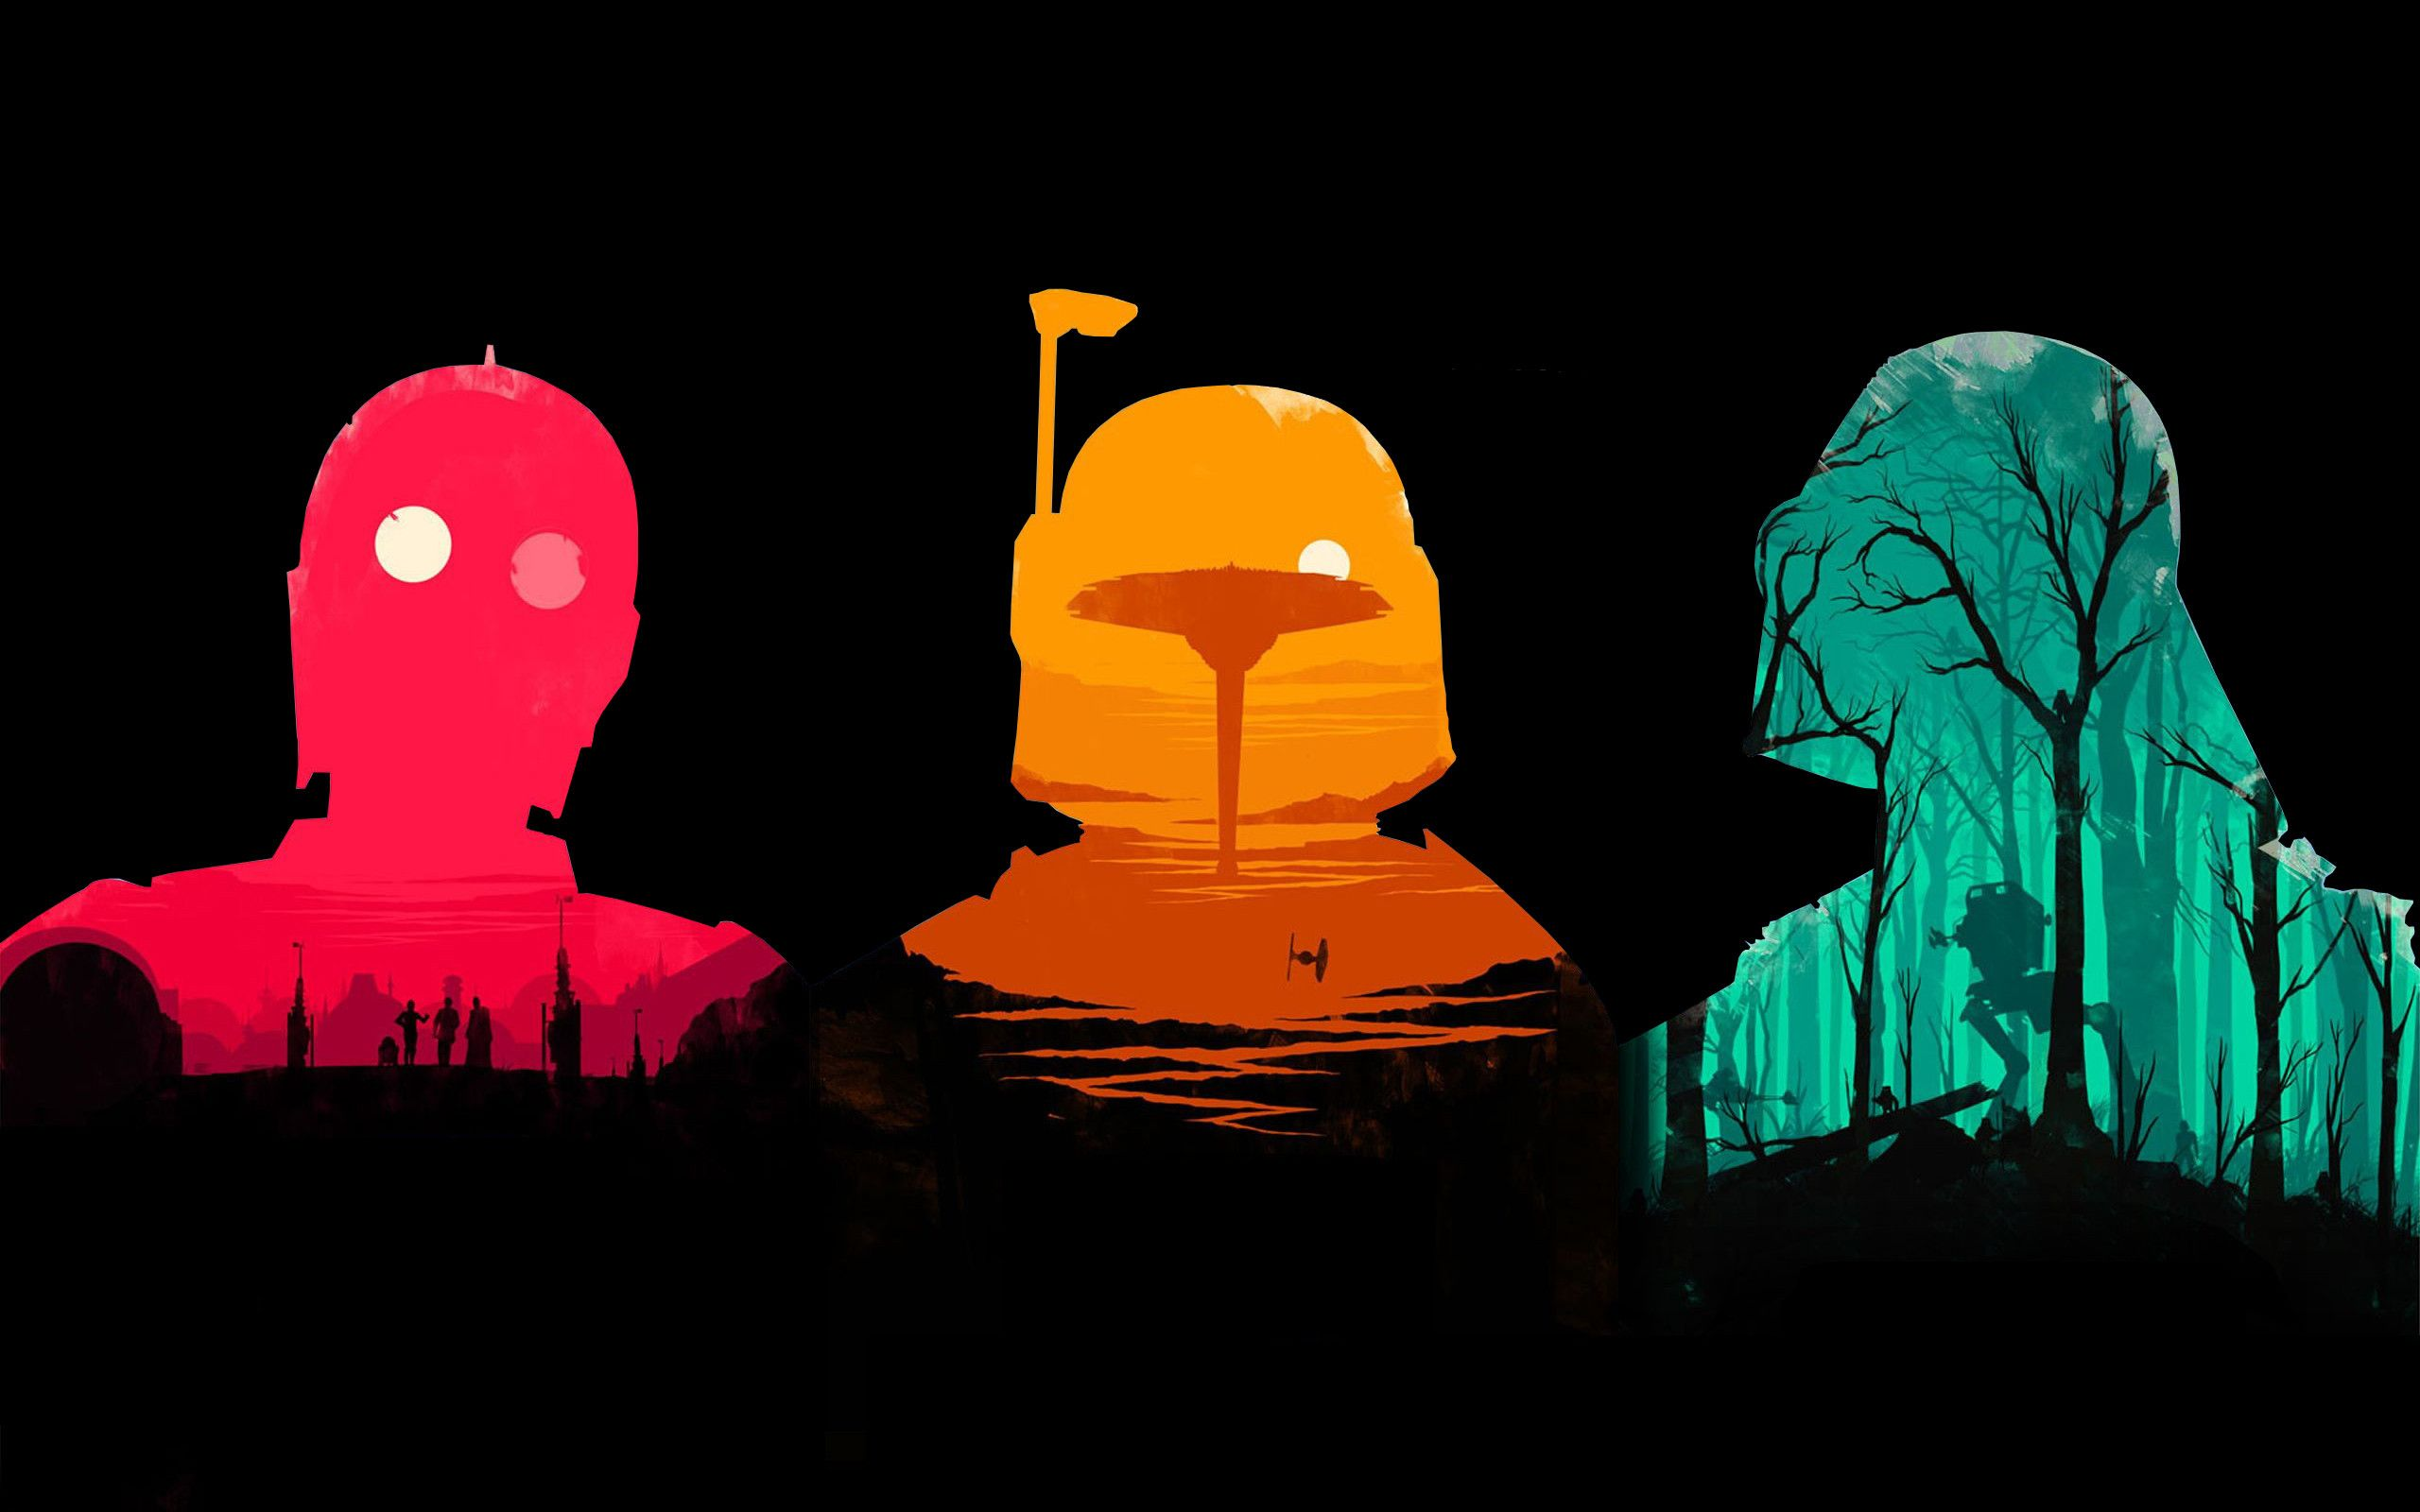 Wallpapers Mostly Geeky Nerdy Stuff Nothing Too Artsy Pics Geeky Wallpaper Nerdy Wallpaper Star Wars Wallpaper